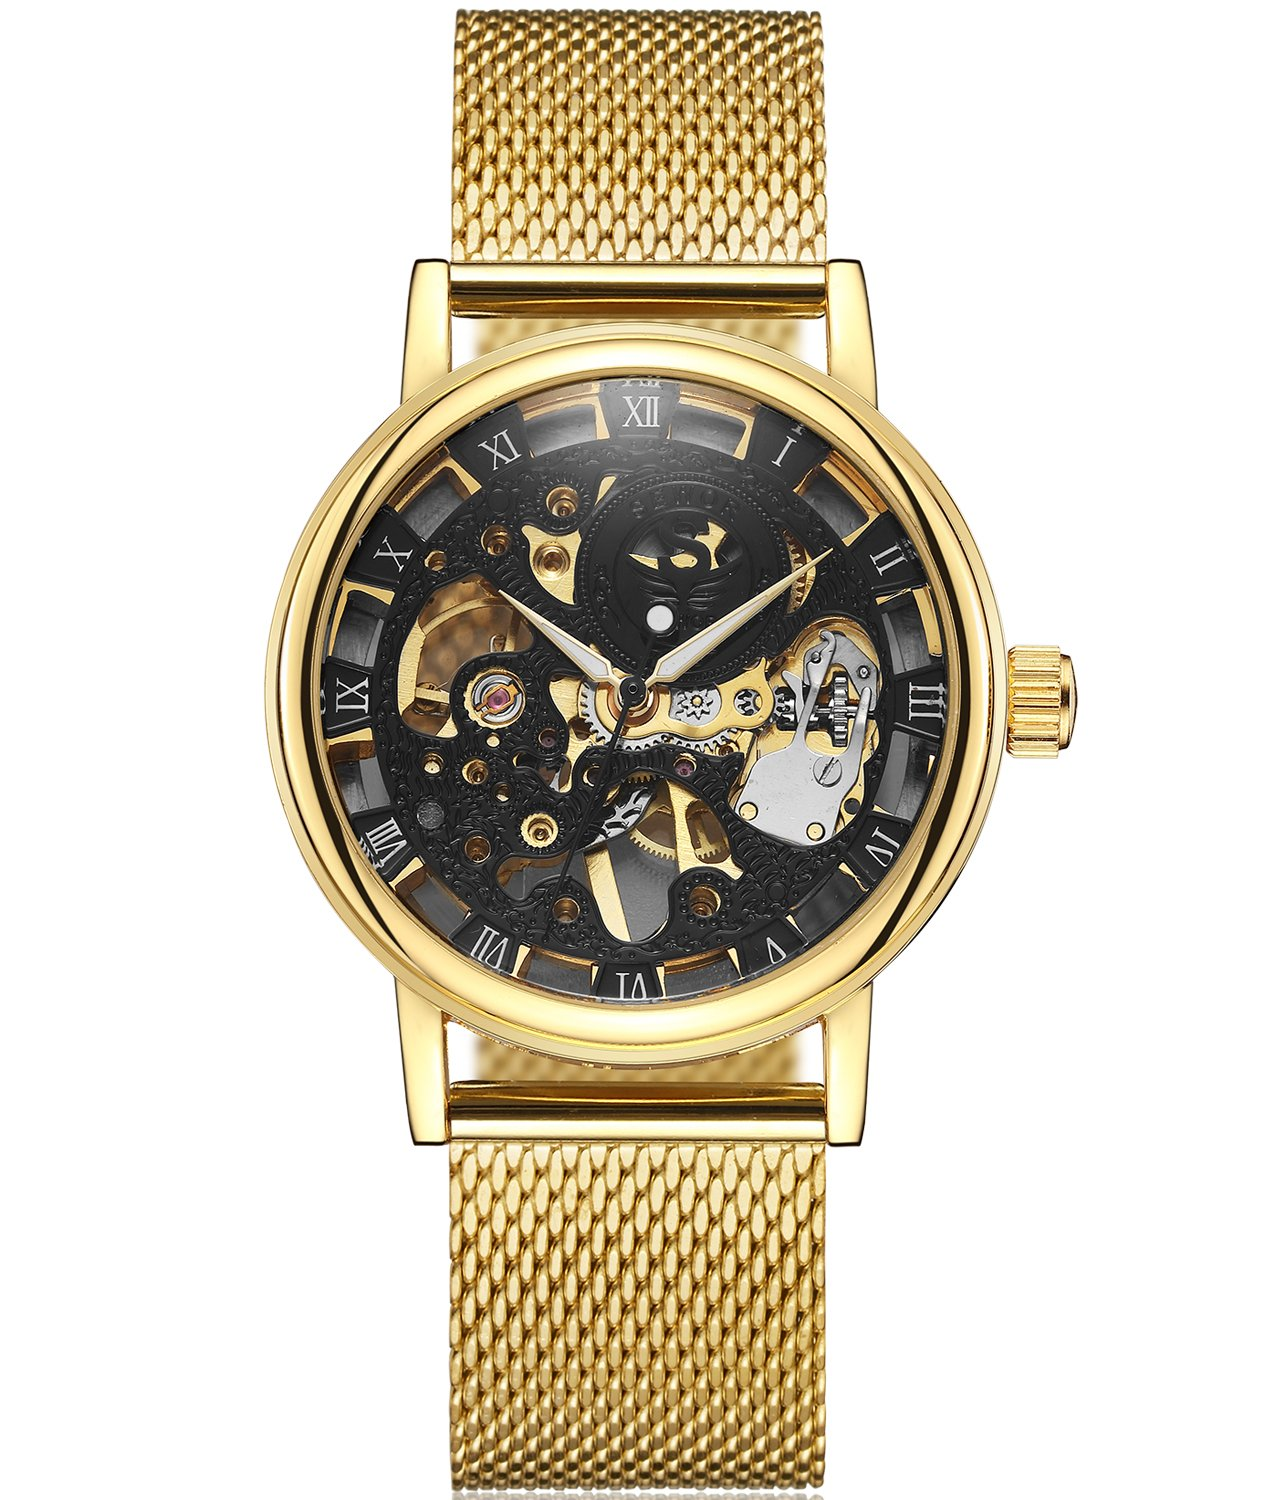 SEWOR Dress Royal Hollow Carving Mechanical Hand Wind Wrist Watch for Man with Mesh Steel Band Slim Design 3